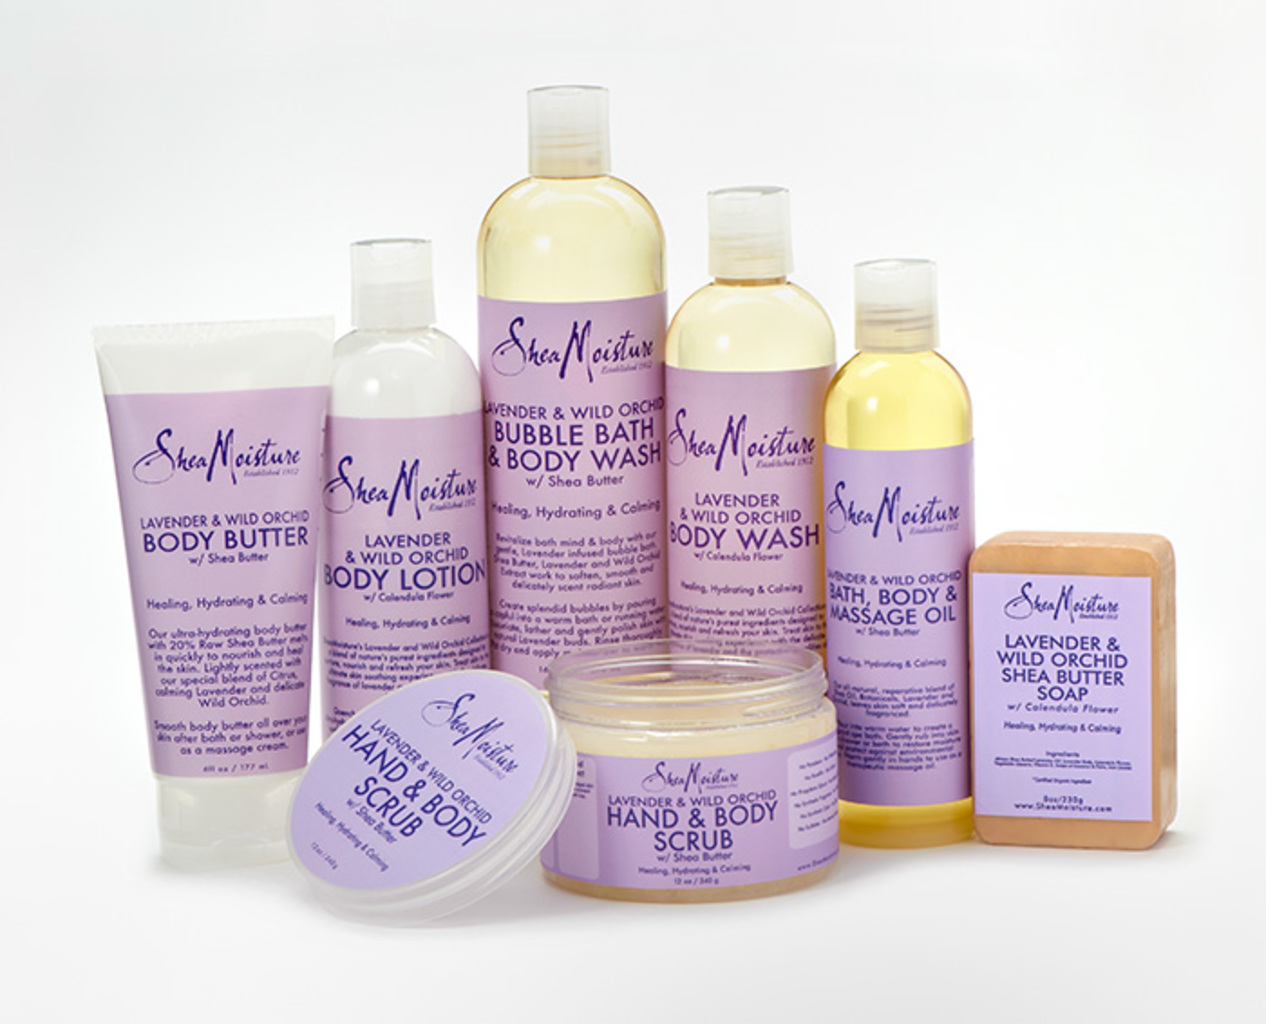 Relaxing lavender by Shea Moisture is a customer favorite. Visit #Amazon to get your set today.